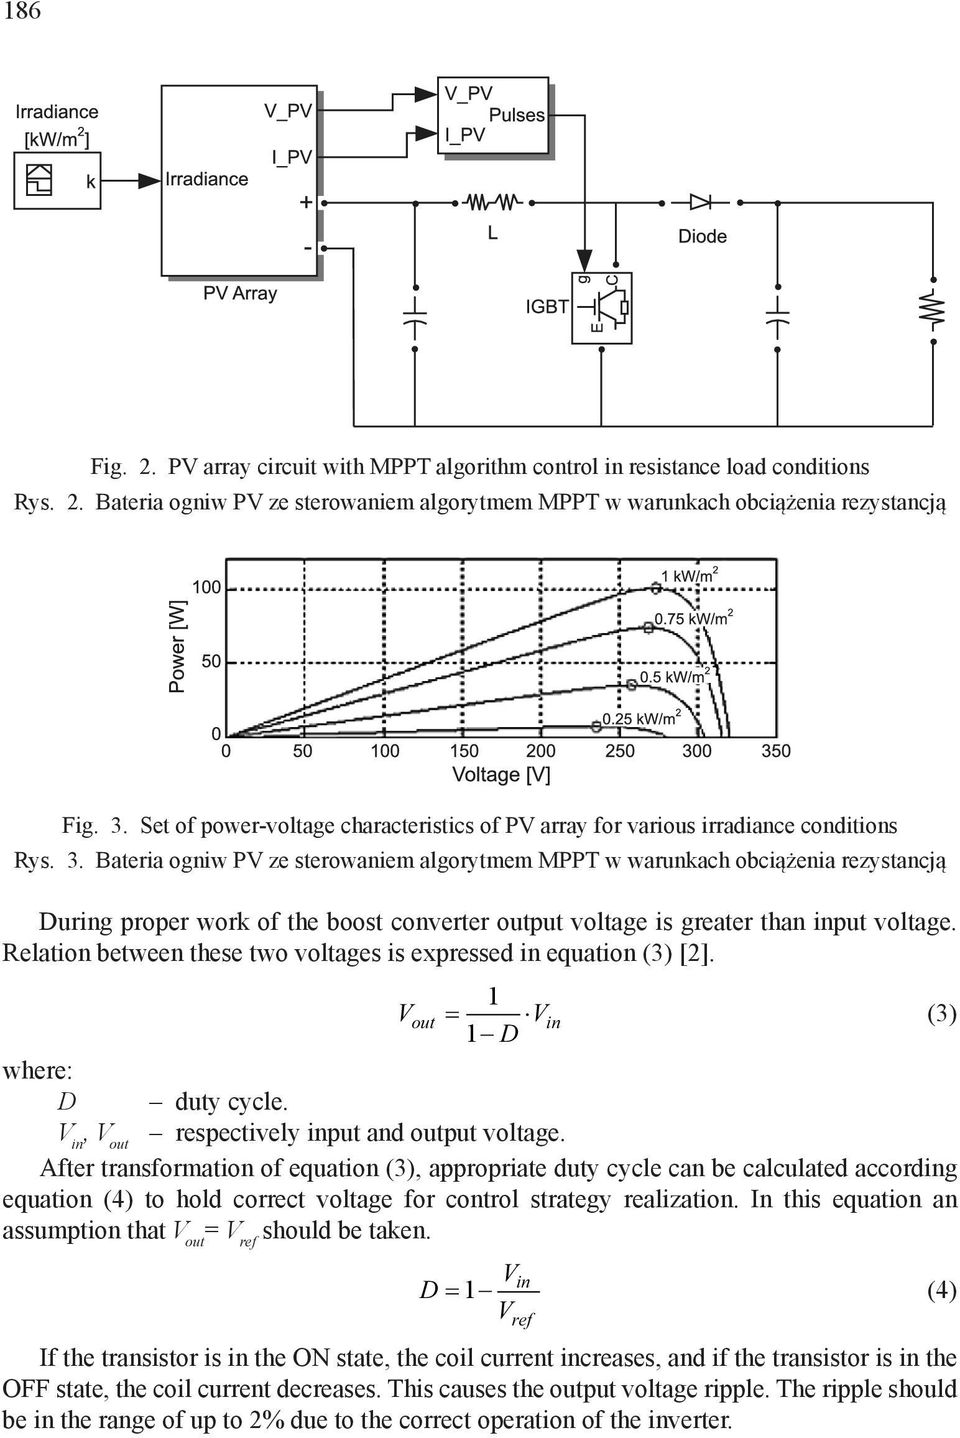 Bateria ogniw PV ze sterowaniem algorytmem MPPT w warunkach obciążenia rezystancją During proper work of the boost converter output voltage is greater than input voltage.